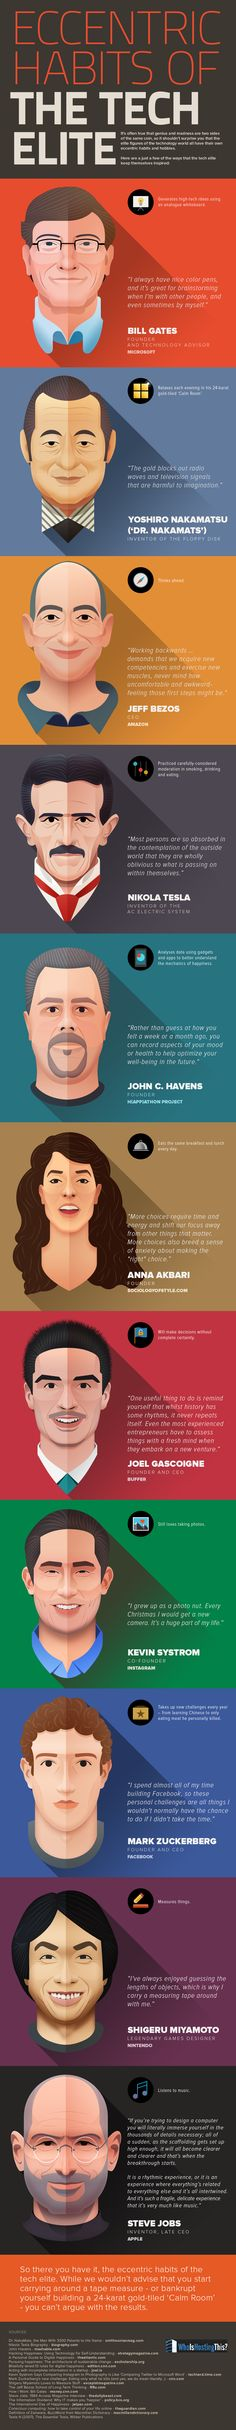 11 Eccentric Habits of the Tech Elite - http://dashburst.com/infographic/eccentric-habits-of-tech-elite/